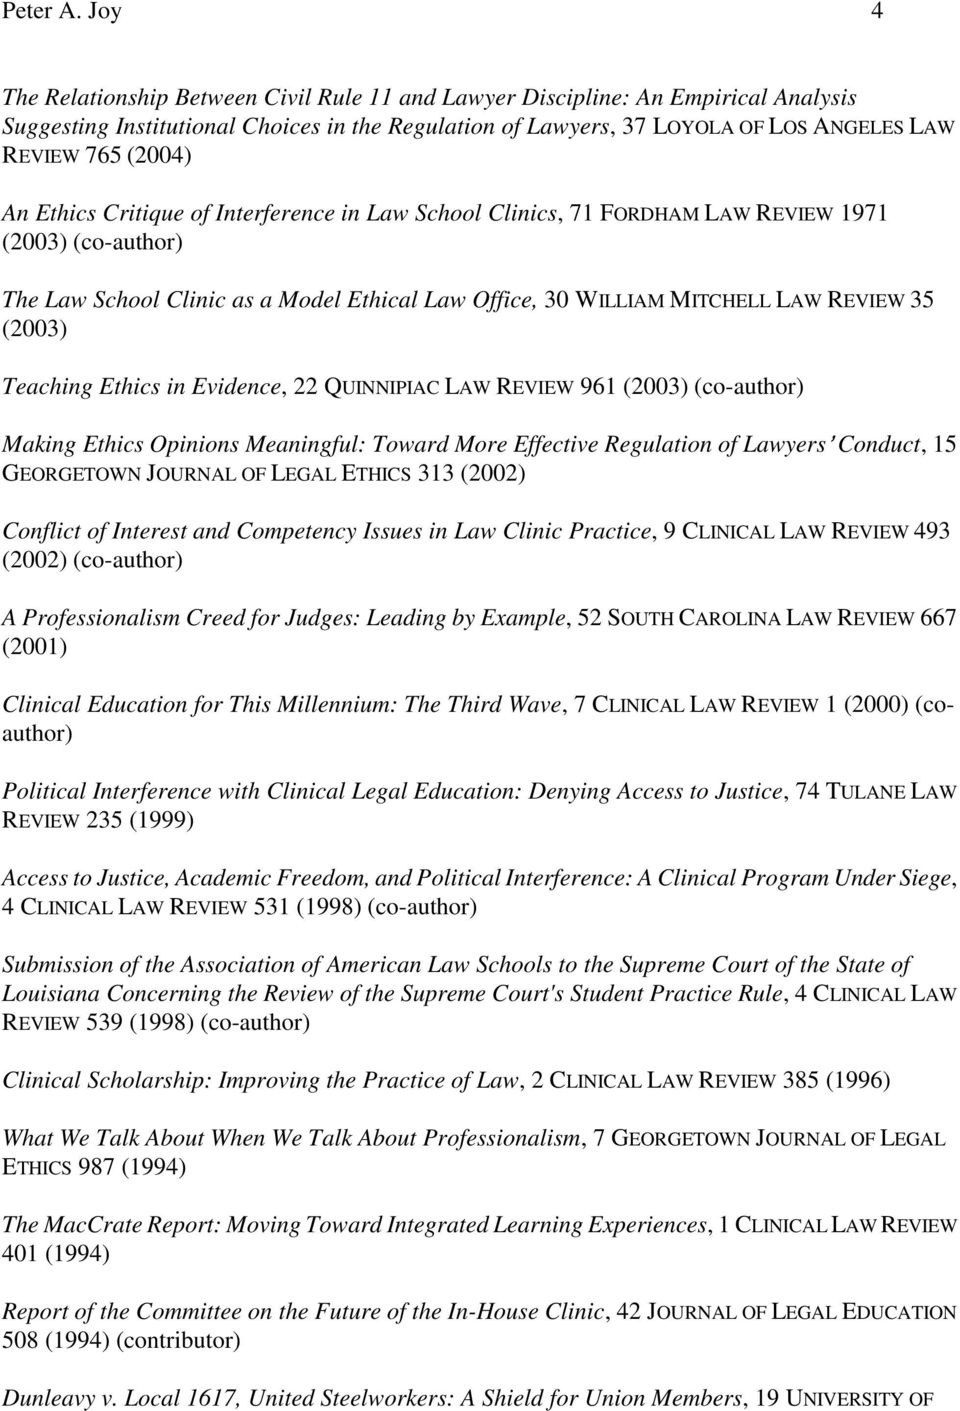 An Ethics Critique of Interference in Law School Clinics, 71 FORDHAM LAW REVIEW 1971 (2003) (co-author) The Law School Clinic as a Model Ethical Law Office, 30 WILLIAM MITCHELL LAW REVIEW 35 (2003)